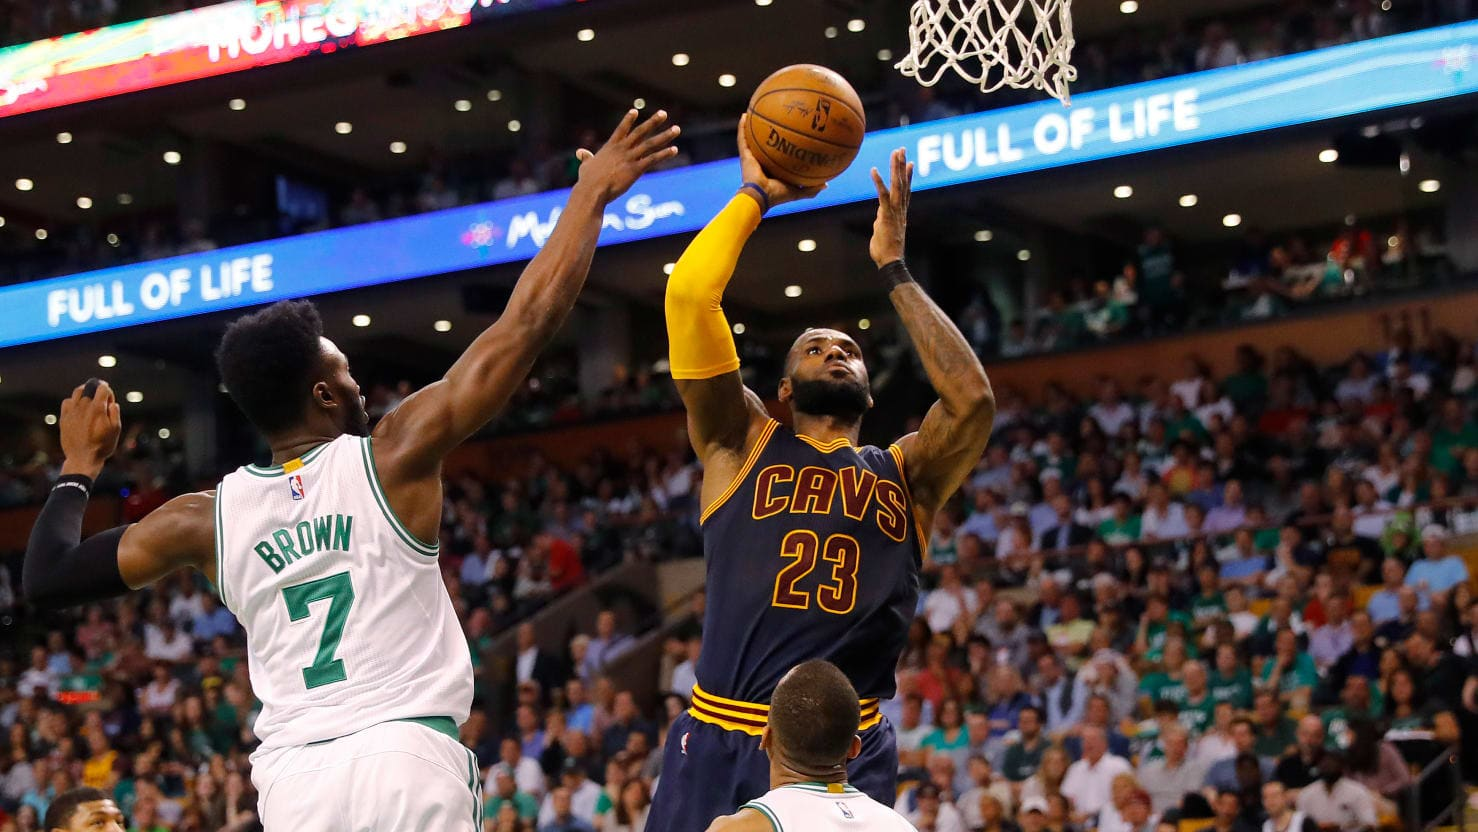 Cavaliers vs. Celtics Game 4: How to Watch Live Stream Online